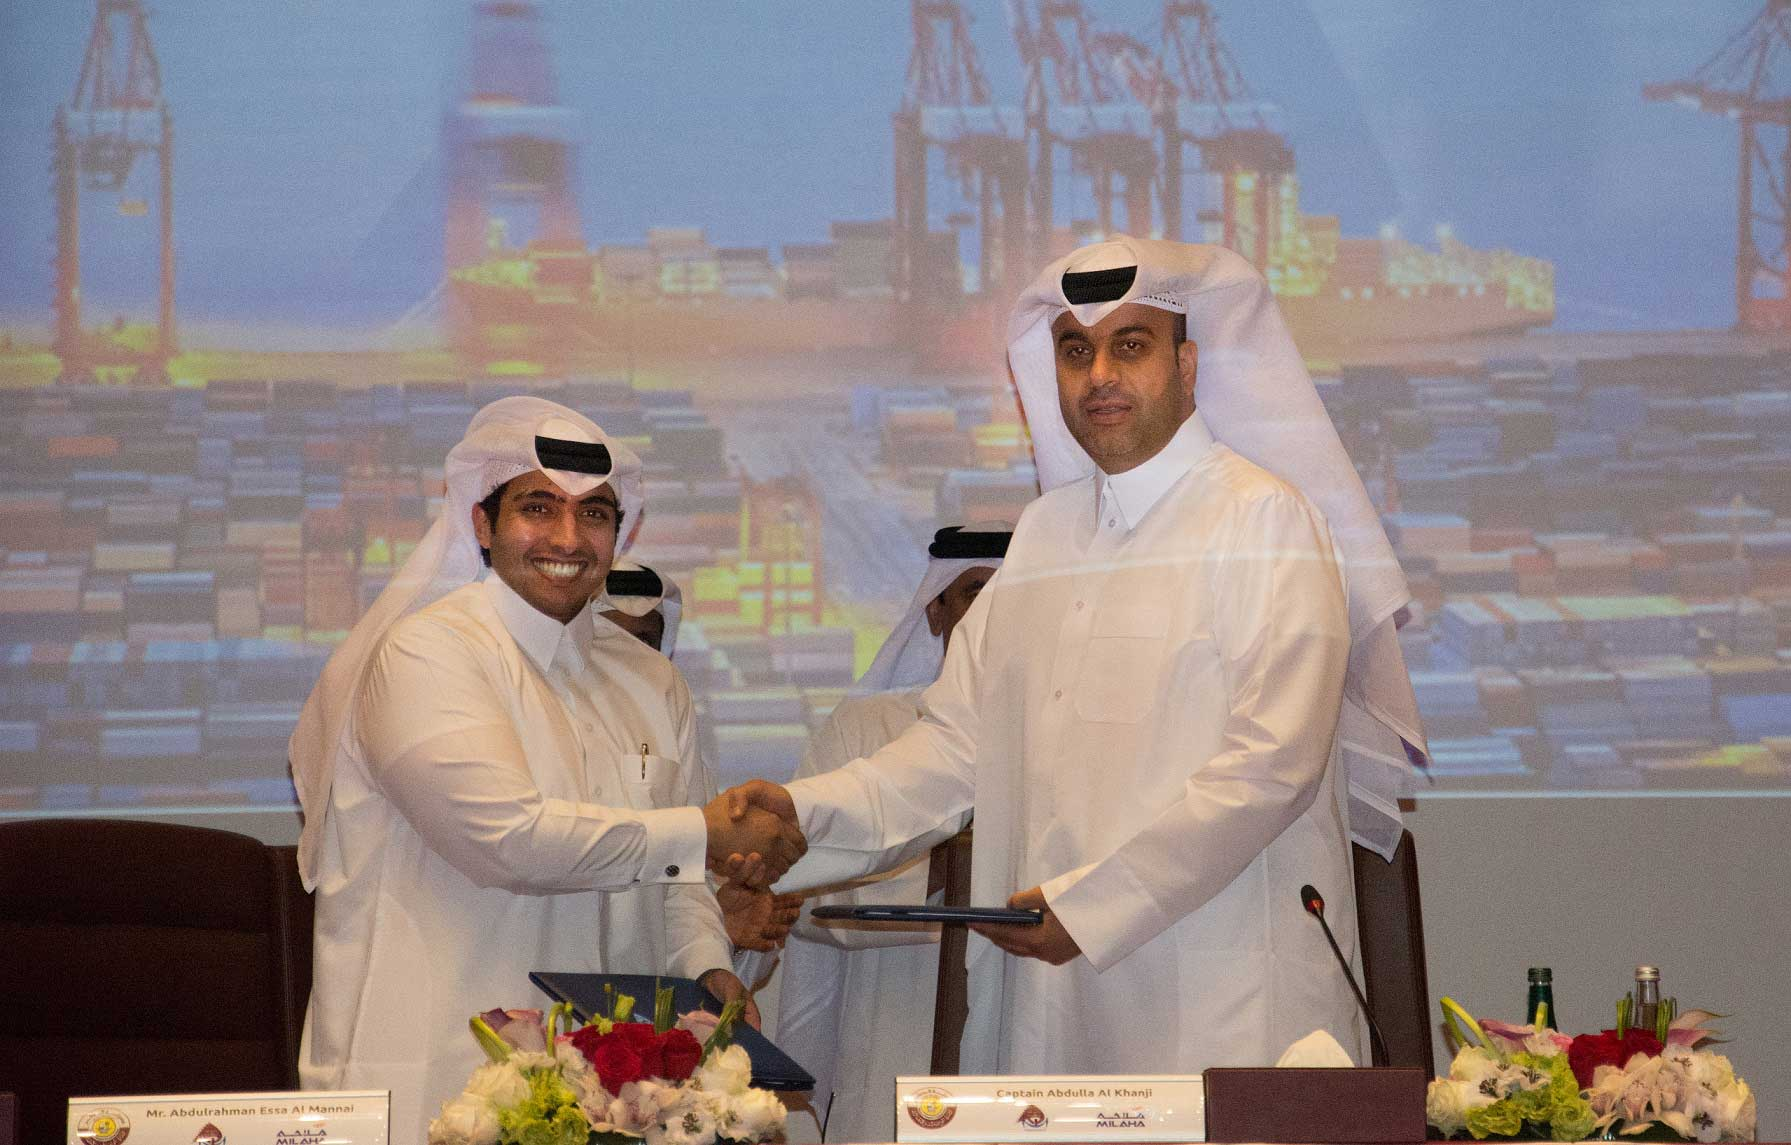 Mwani Qatar and Mihala agree to manage Hamad Port